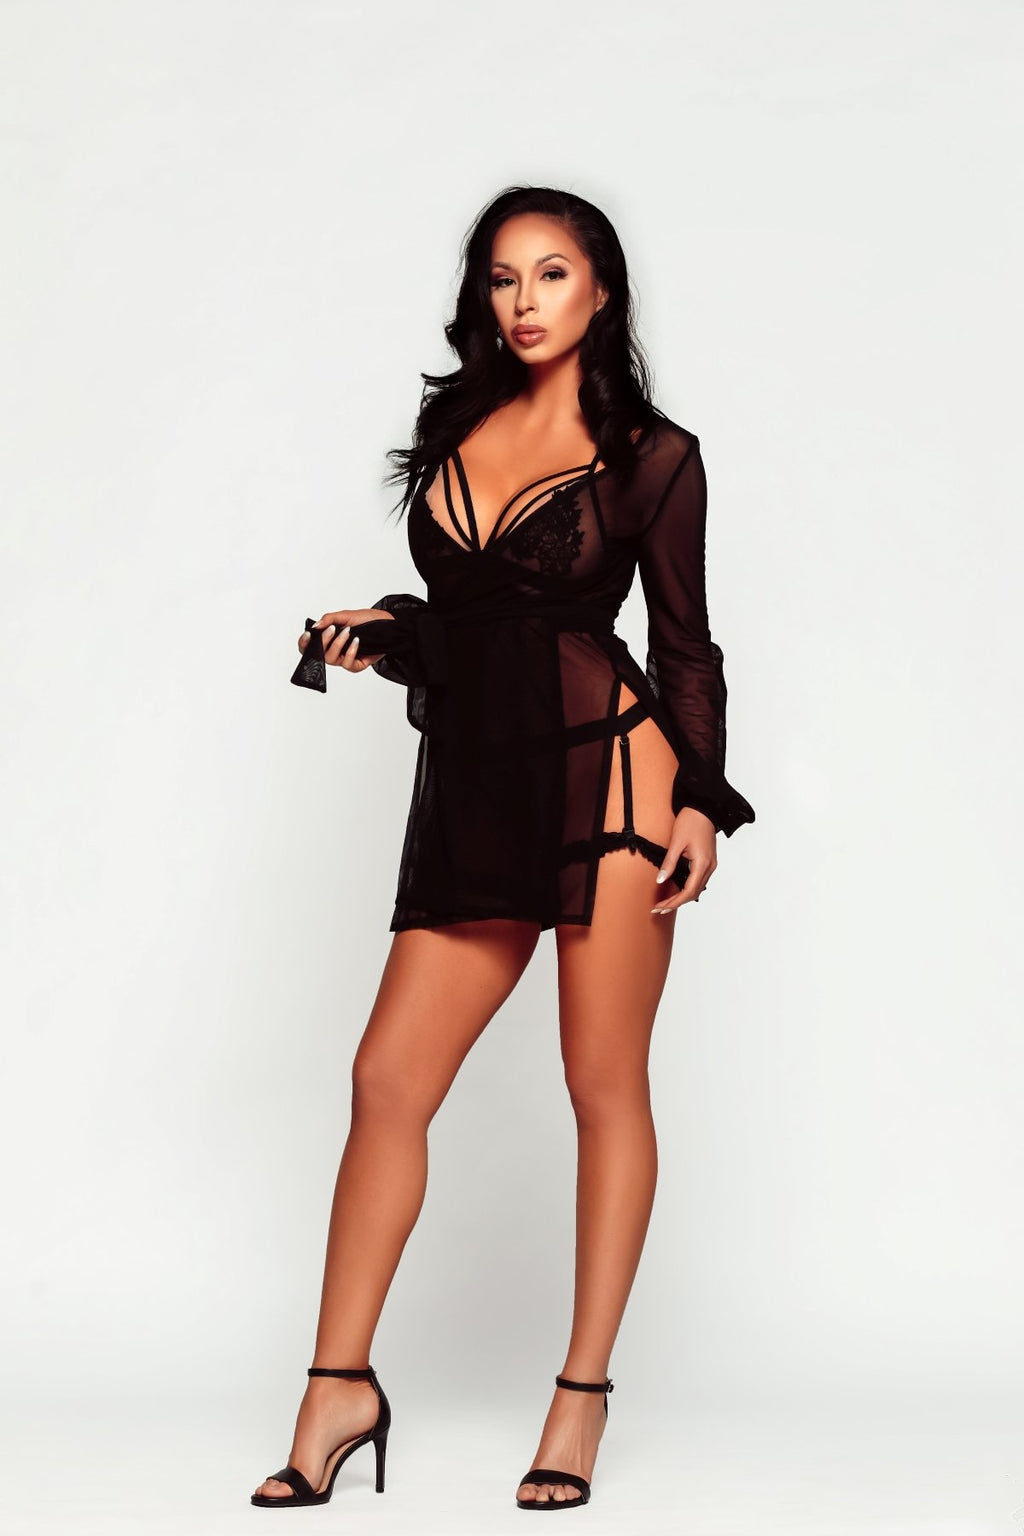 sexy black woman in heels wearing damita belle lingerie set online